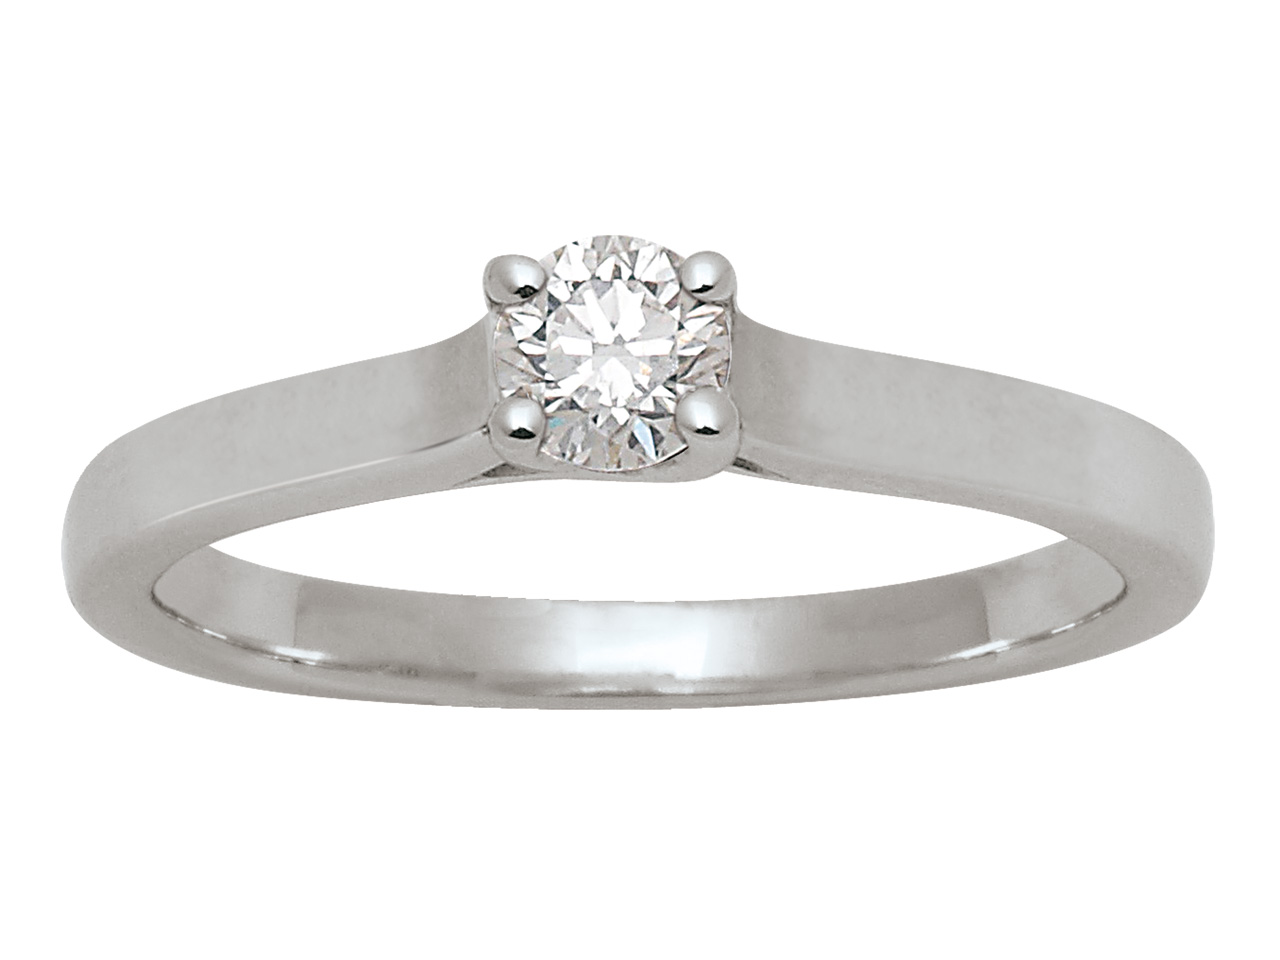 Bague solitaire diamants 0,30ct, Or gris 18k, doigt 56